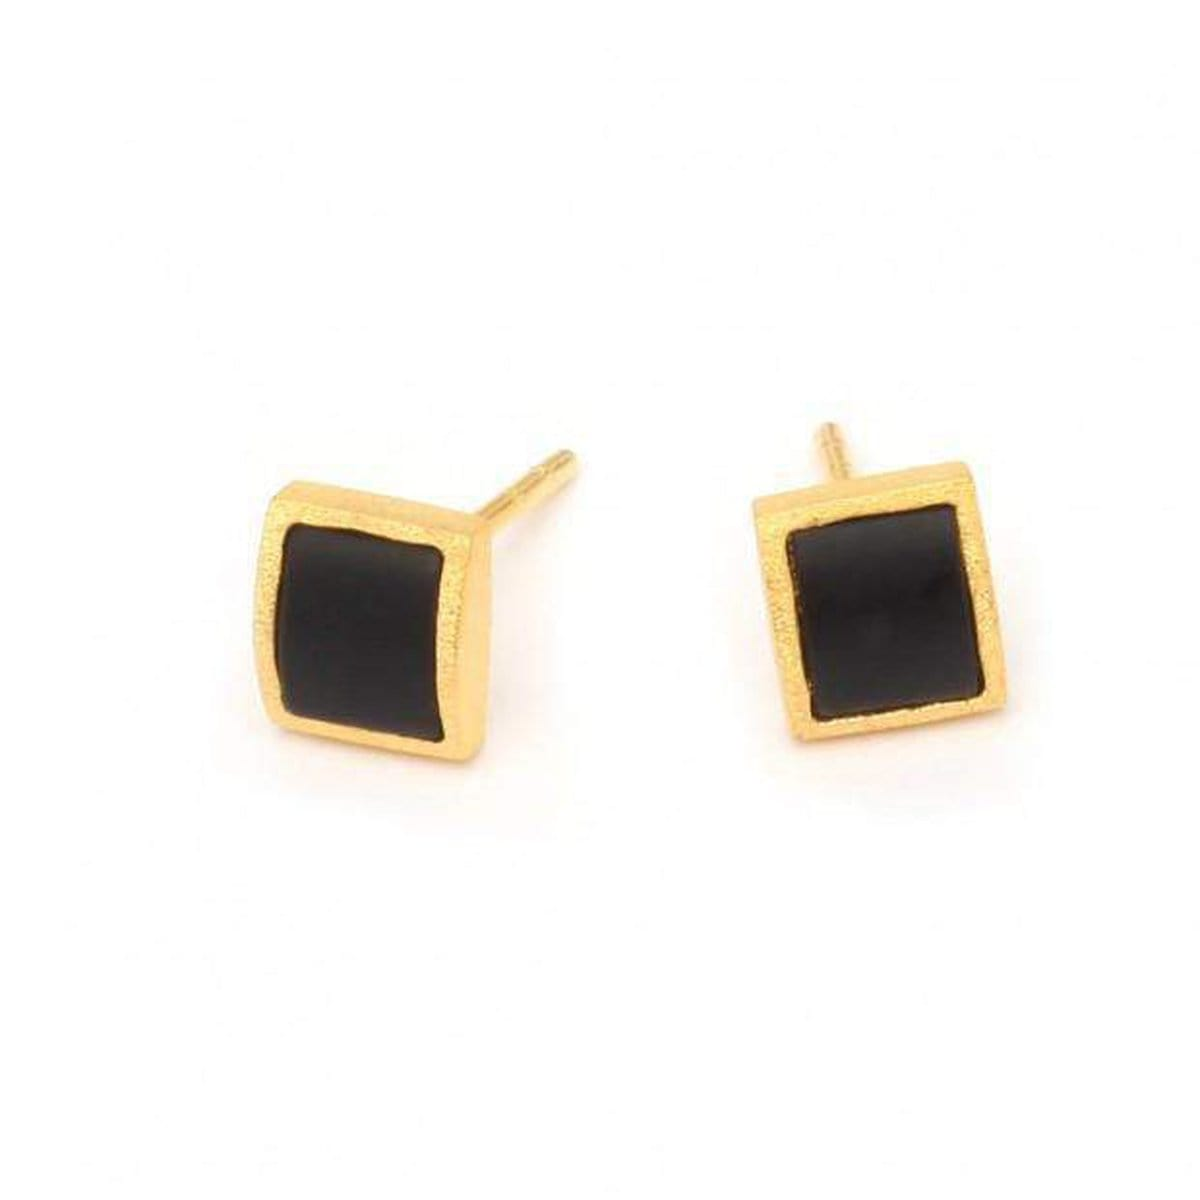 Colini Onyx Earrings - 19216896-Bernd Wolf-Renee Taylor Gallery